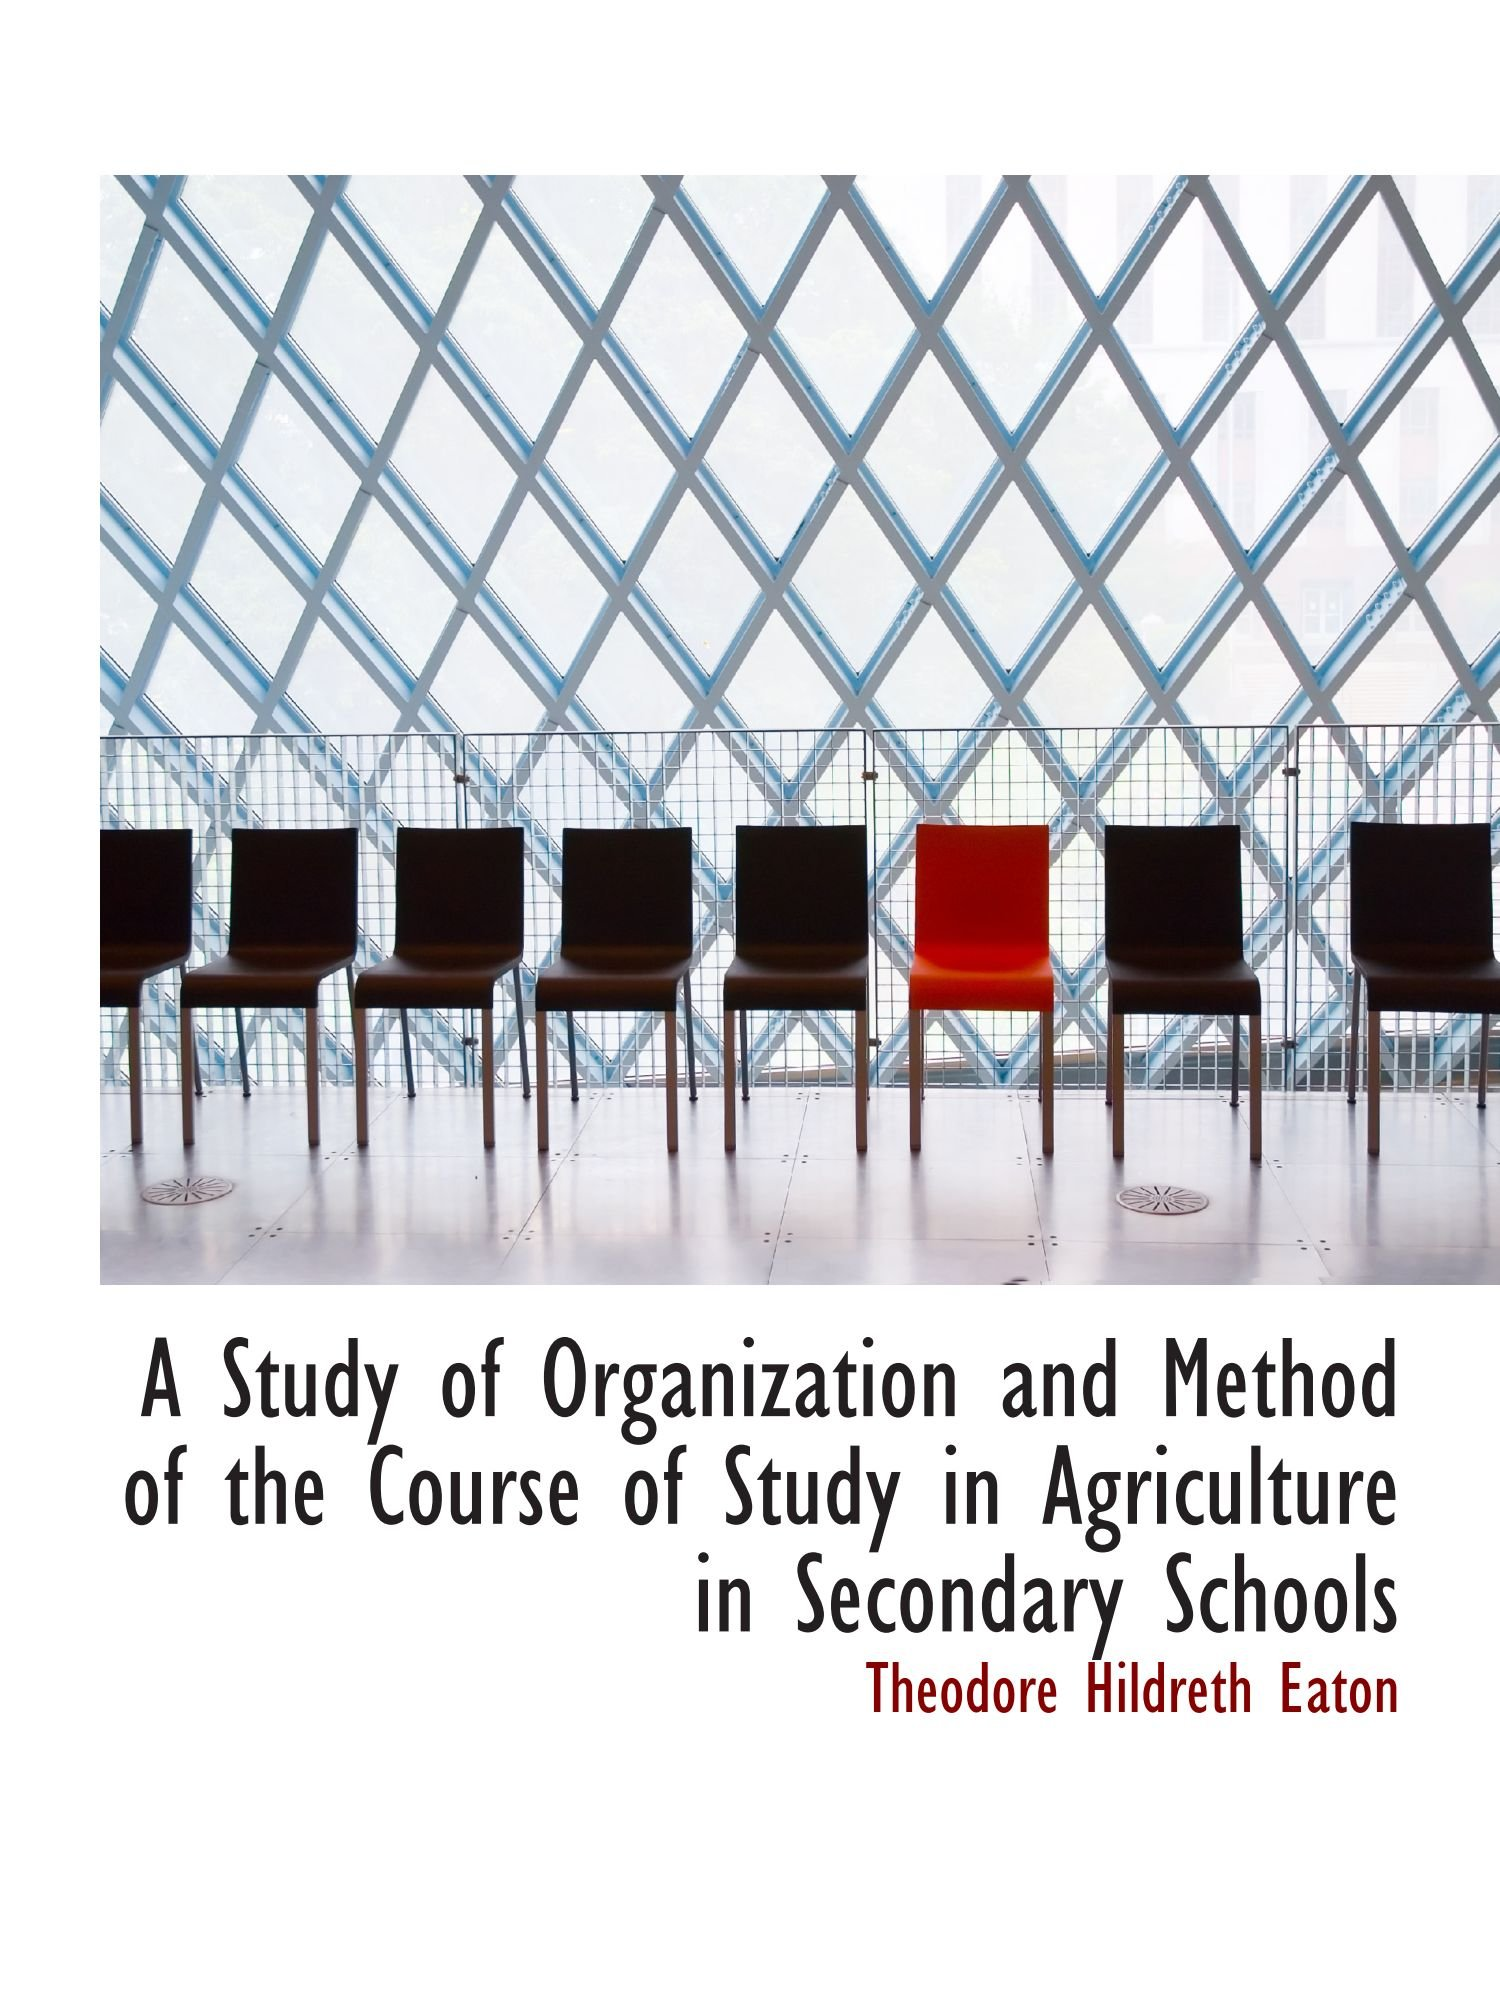 Download A Study of Organization and Method of the Course of Study in Agriculture in Secondary Schools PDF